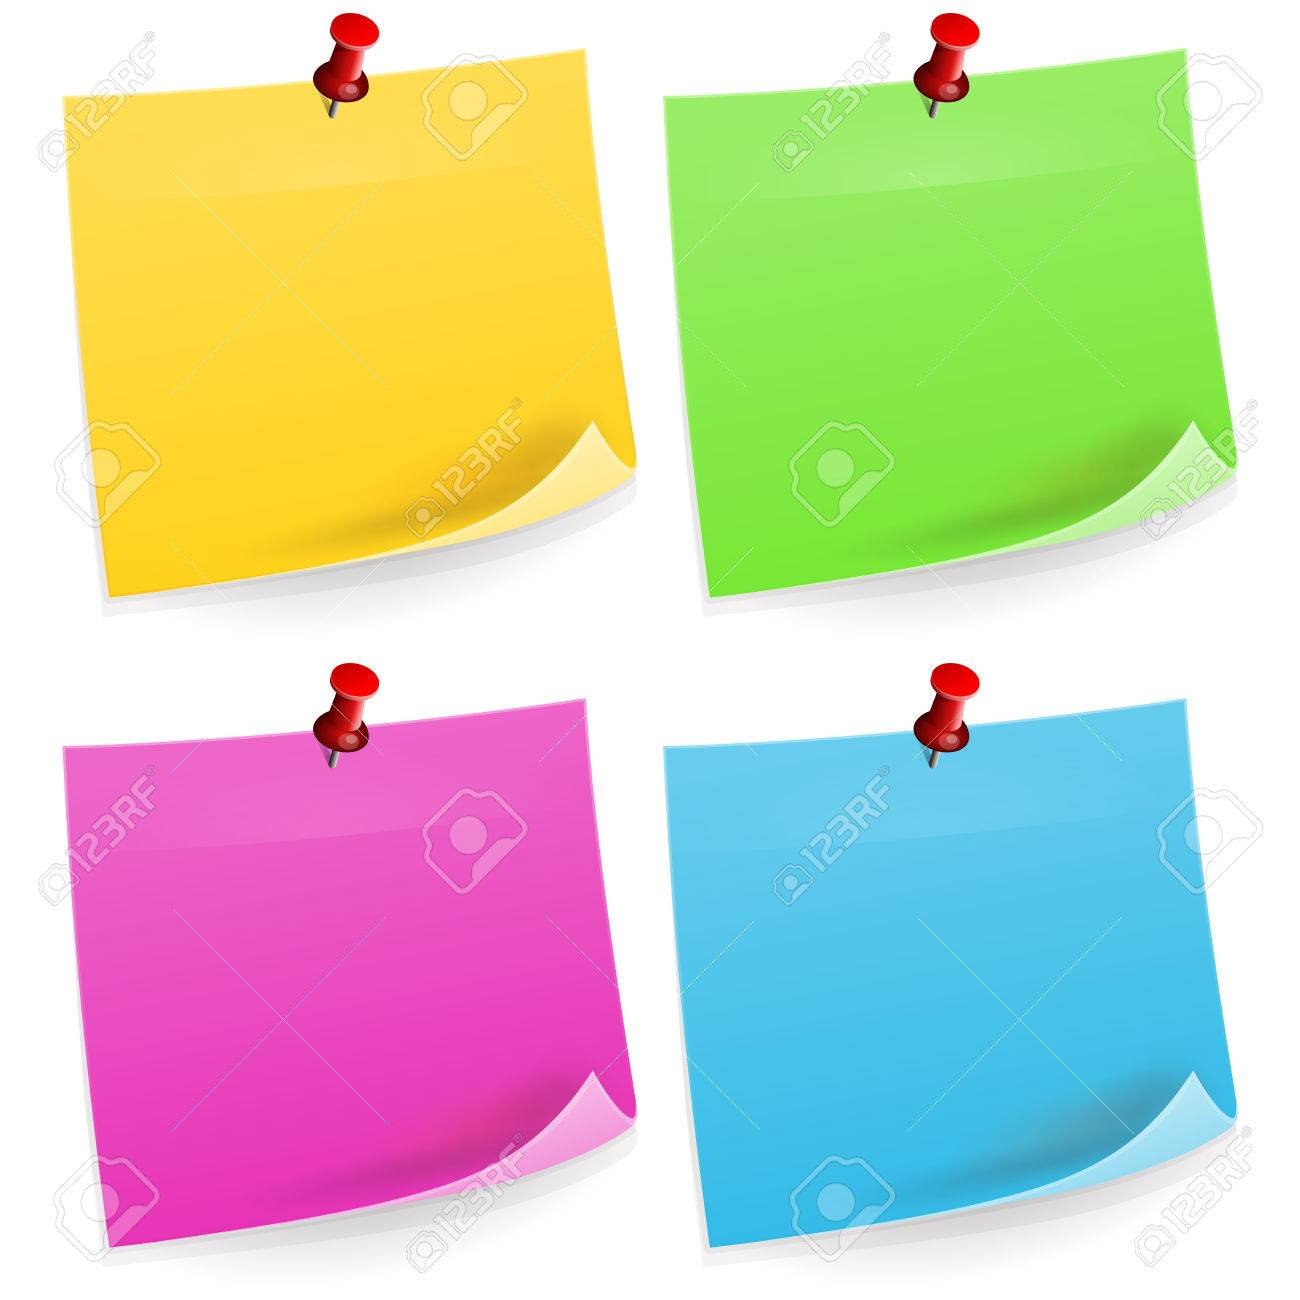 Free vector graphic sticky note note info paper free image on - Four Sticky Notes Stock Vector 22963653